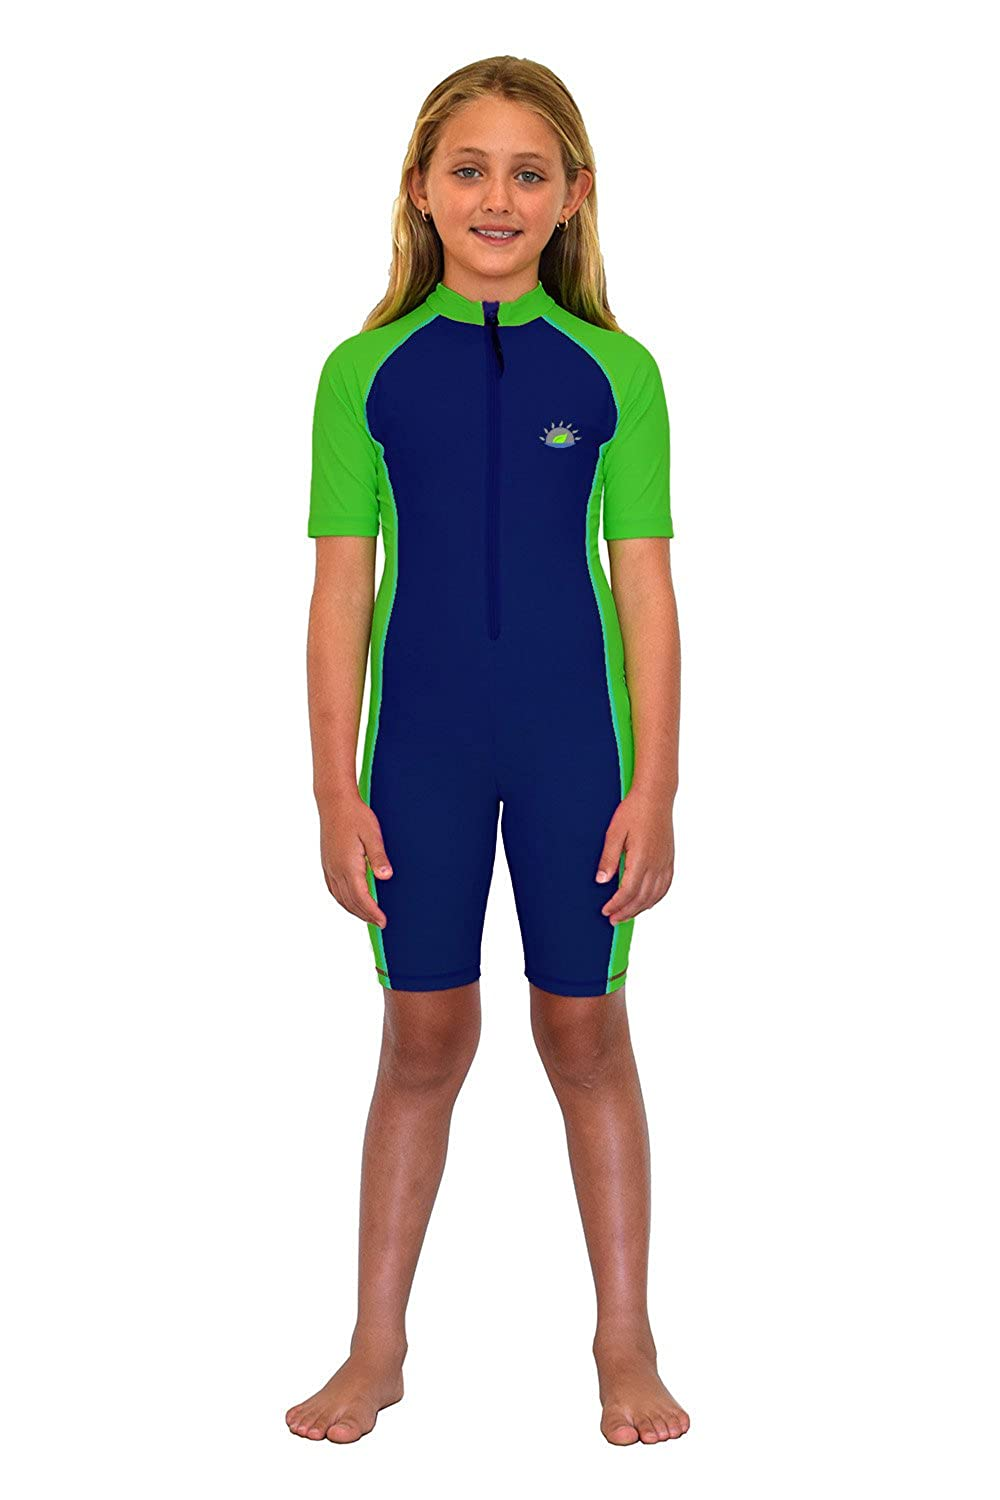 Girls Full Body Sunsuit UV Protective Swimwear UPF50+ Navy Lime S201-NLIM-G